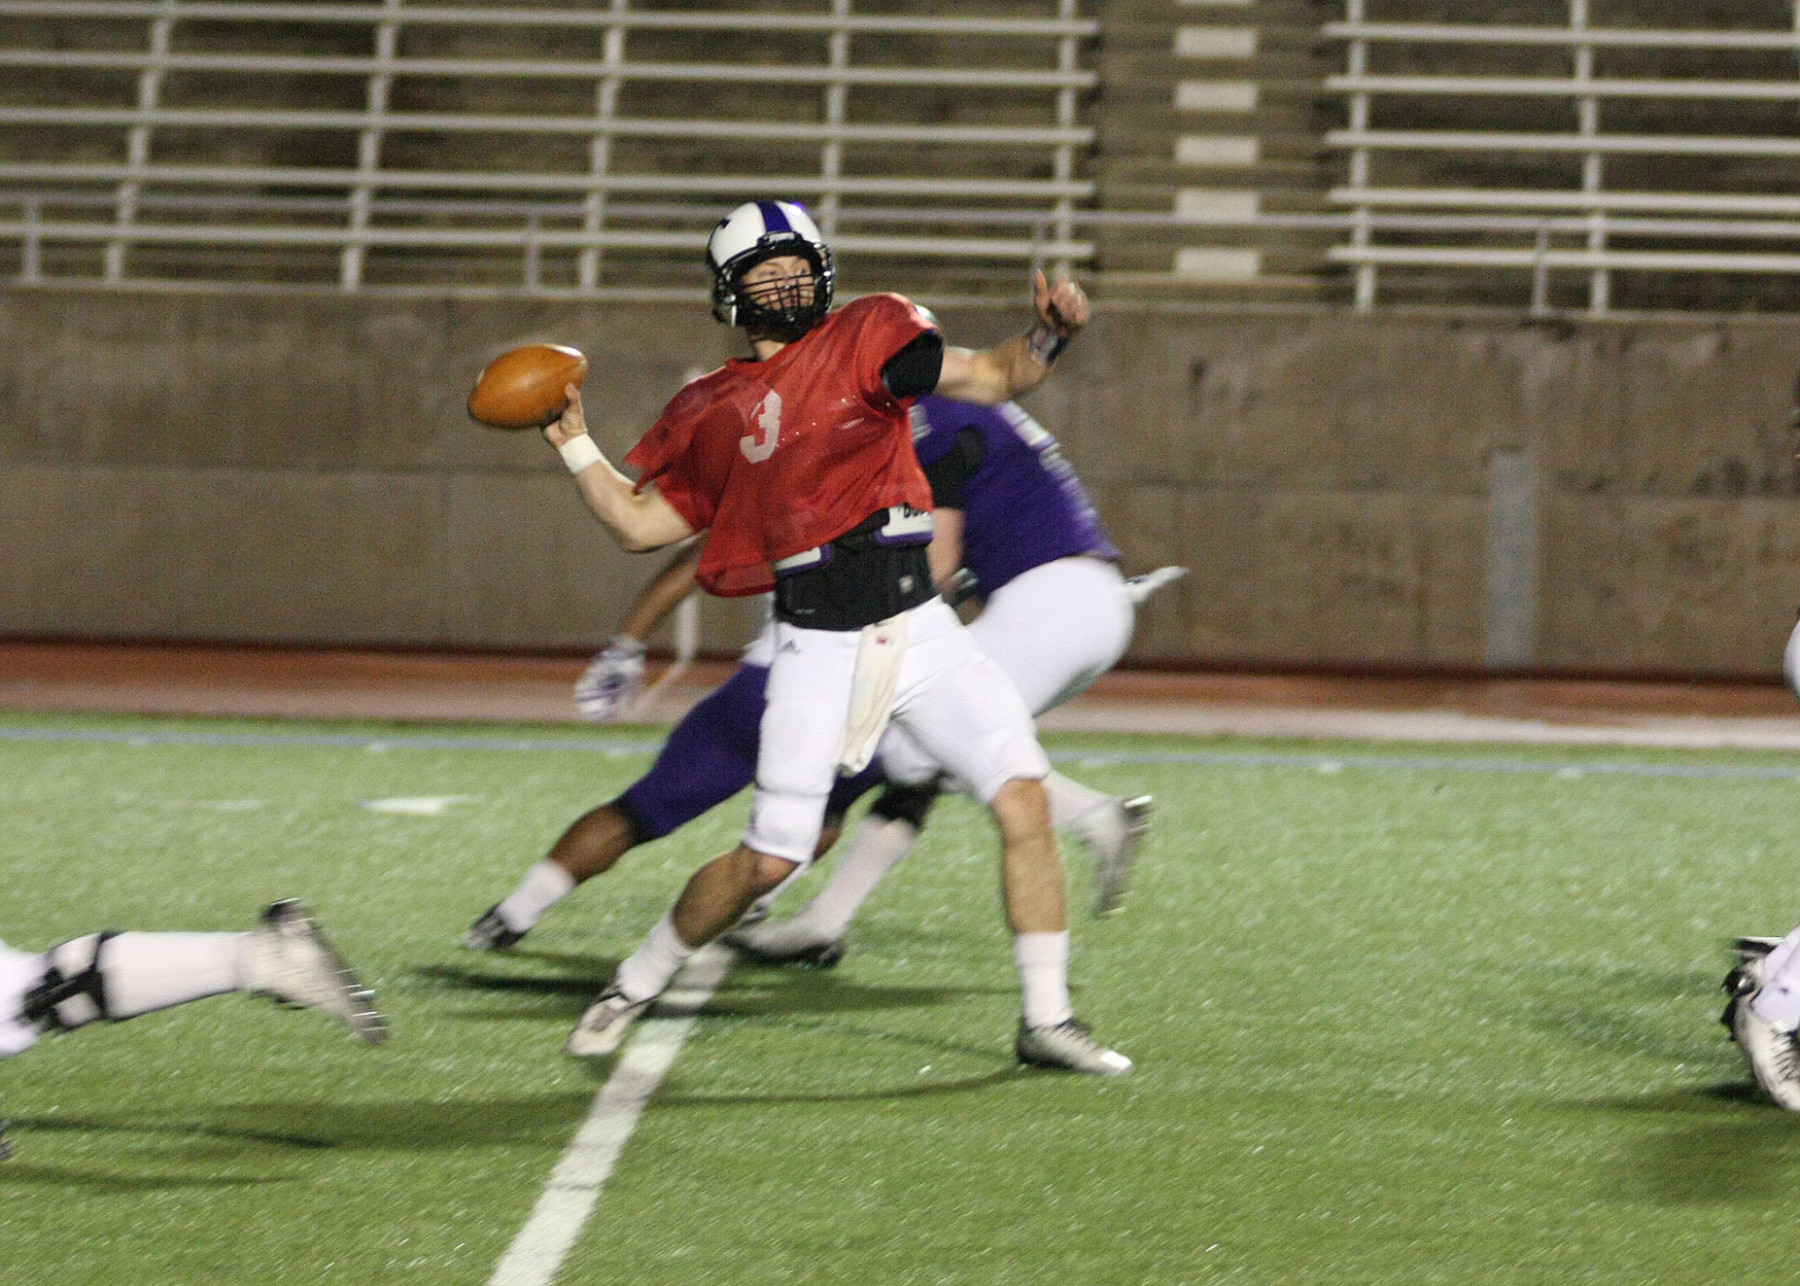 Zed Woerner fires a pass for Purple during Tarleton State's spring football game Saturday night at Memorial Stadium. || BRAD KEITH/TheFlashToday.com